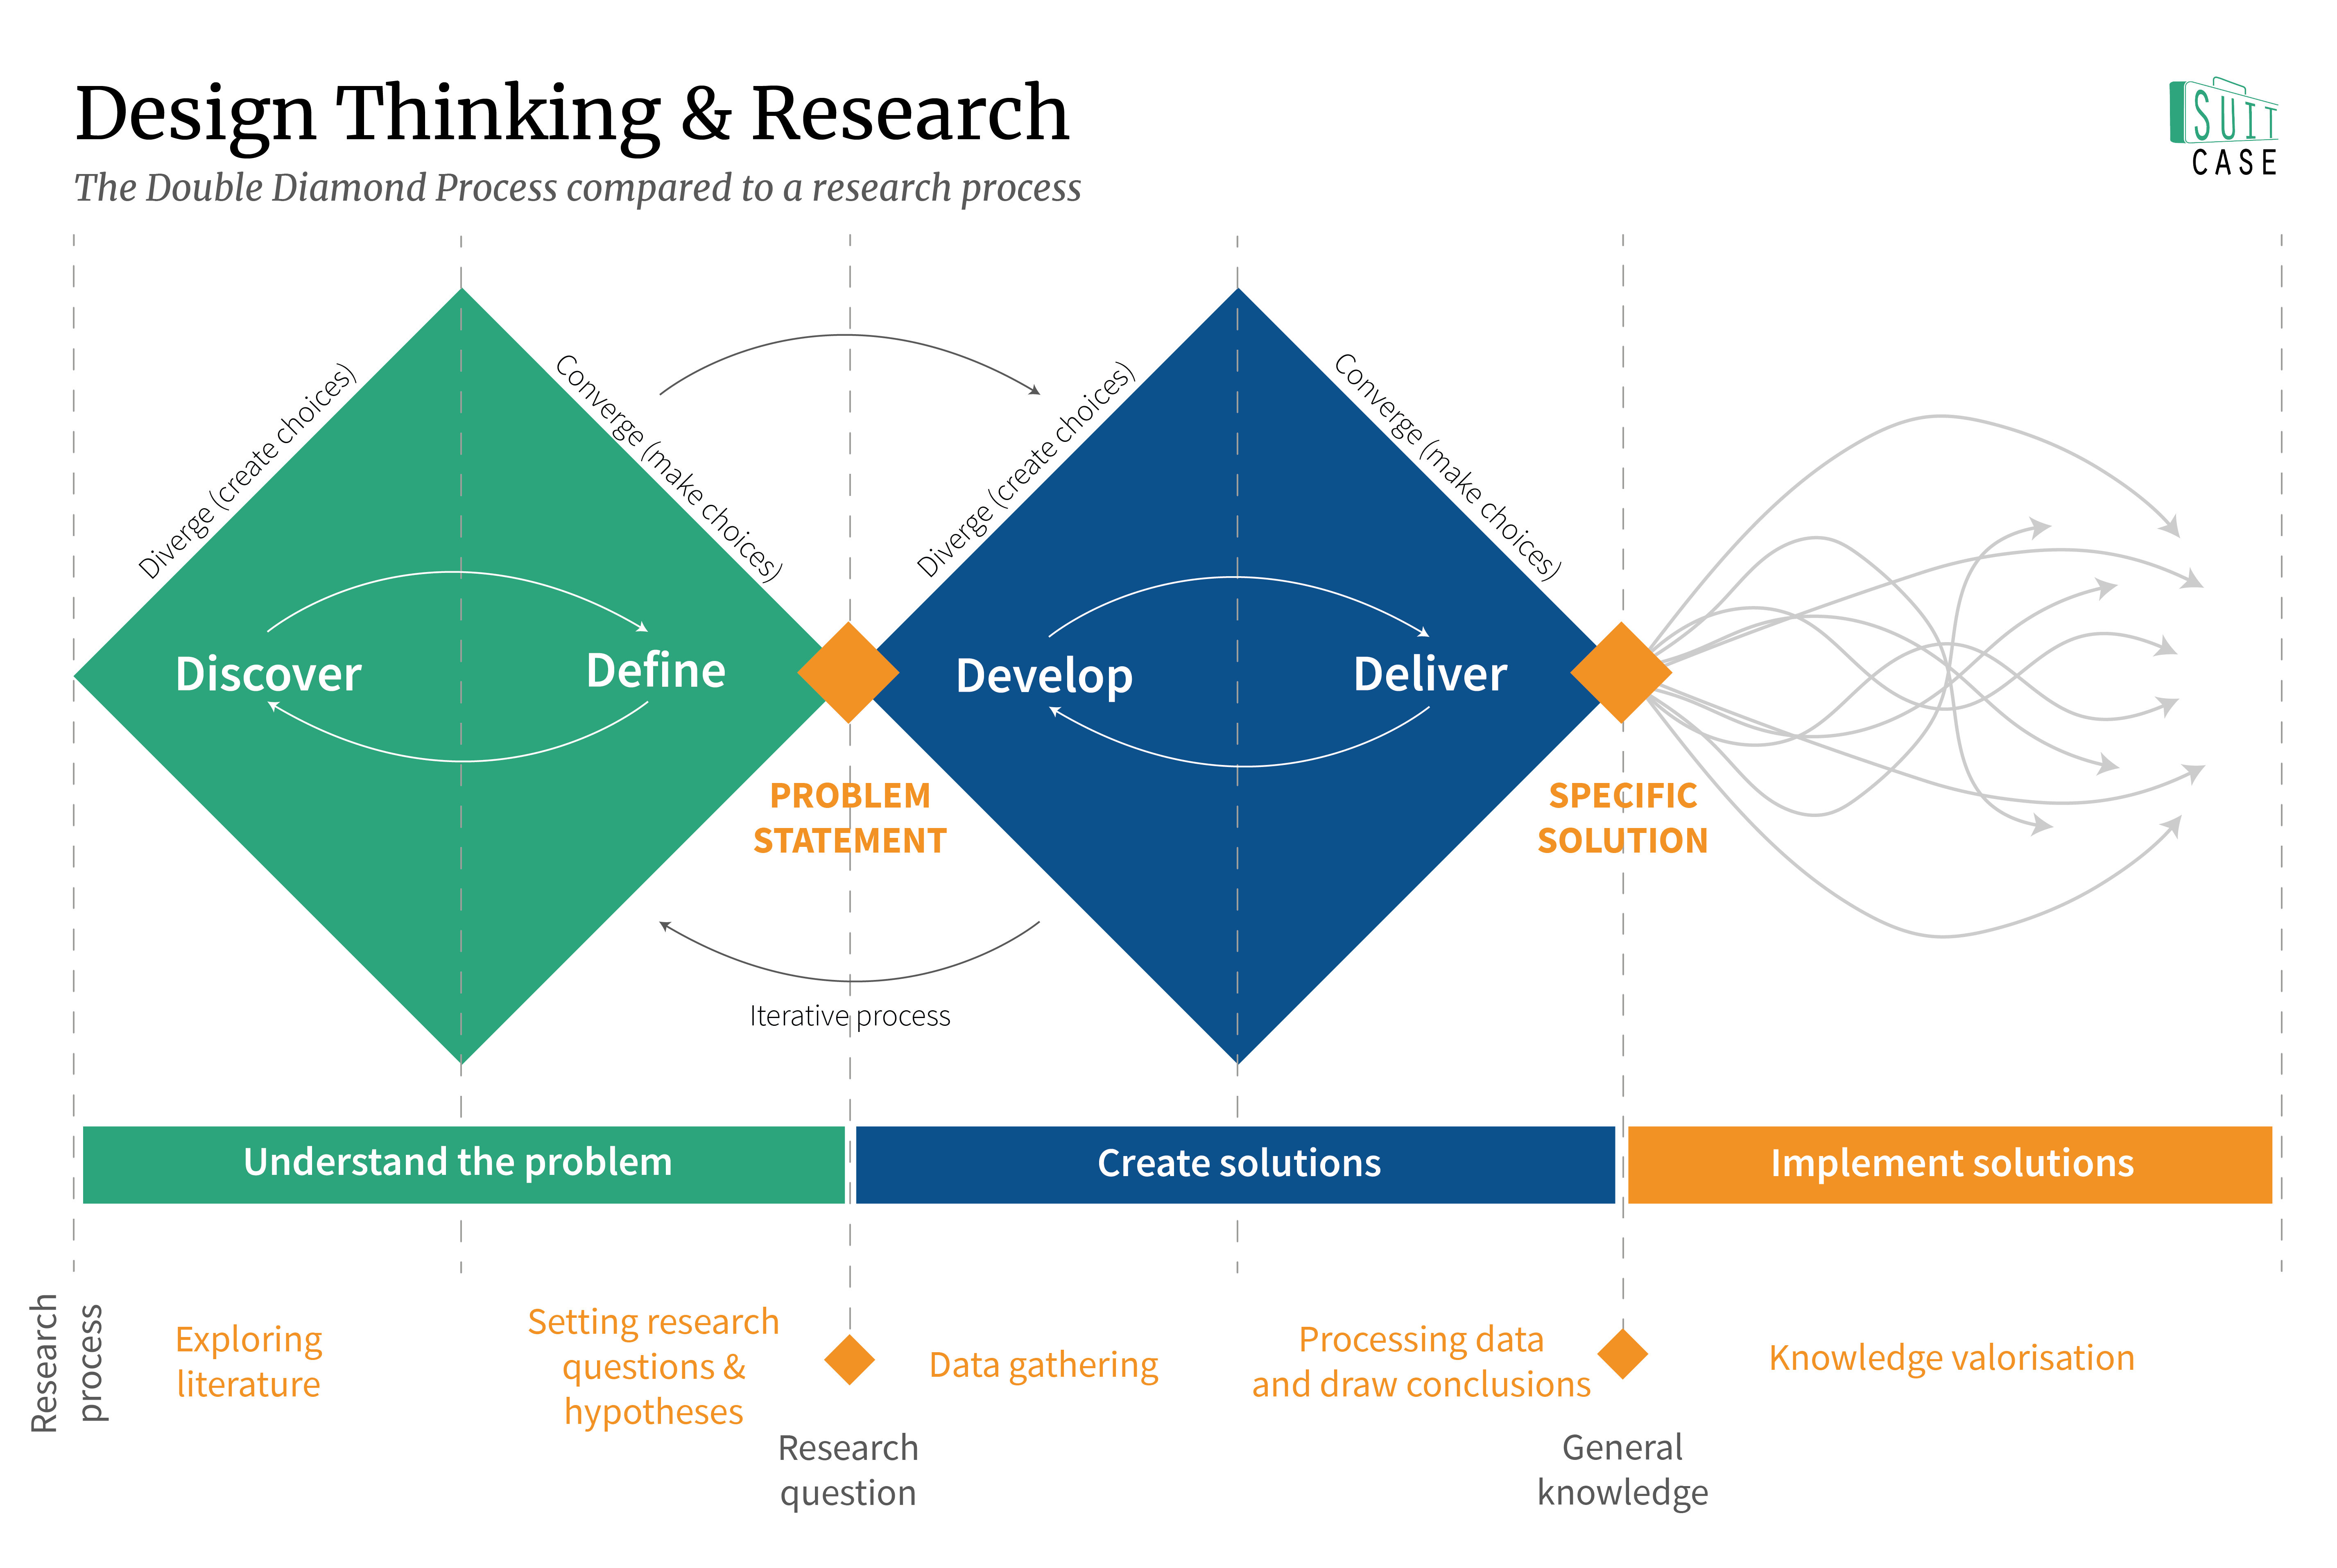 Design Thinking in Research